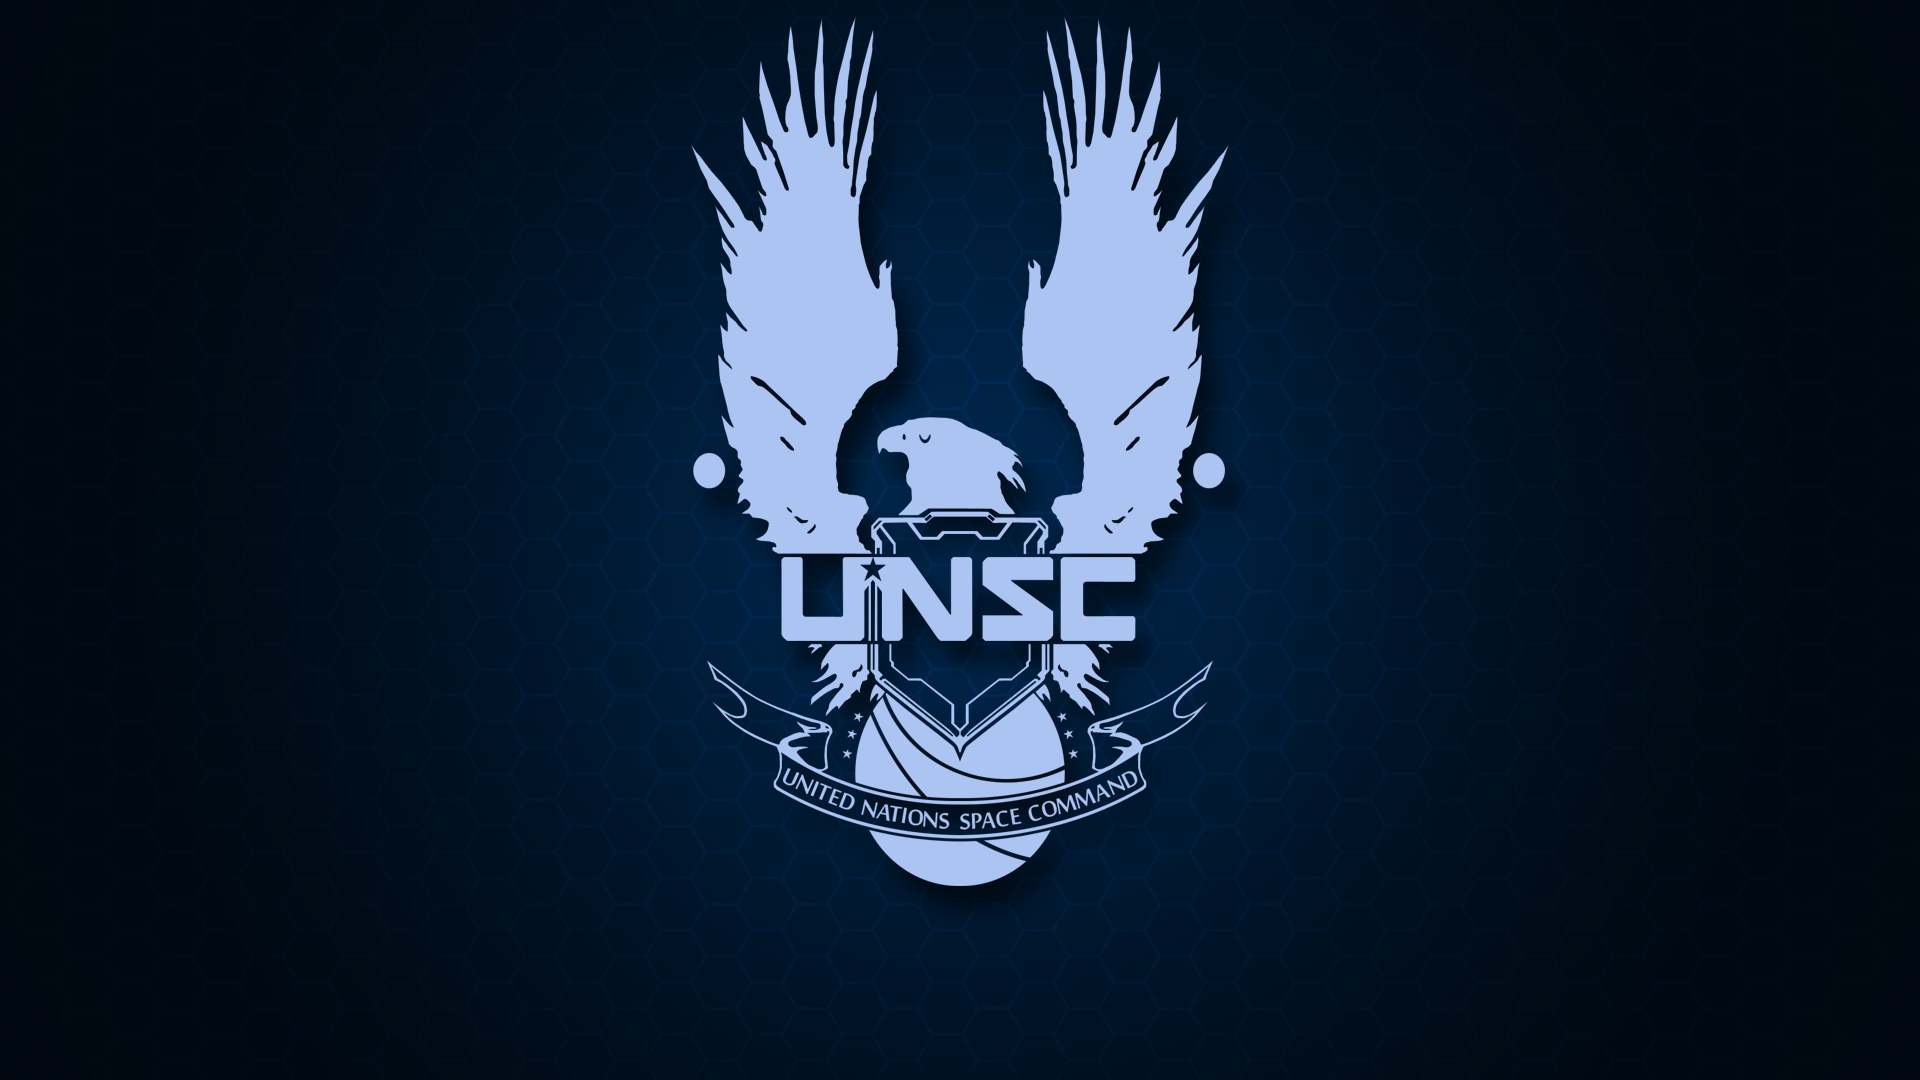 United Nation Space Command Backgrounds, Compatible - PC, Mobile, Gadgets  1920x1080 px